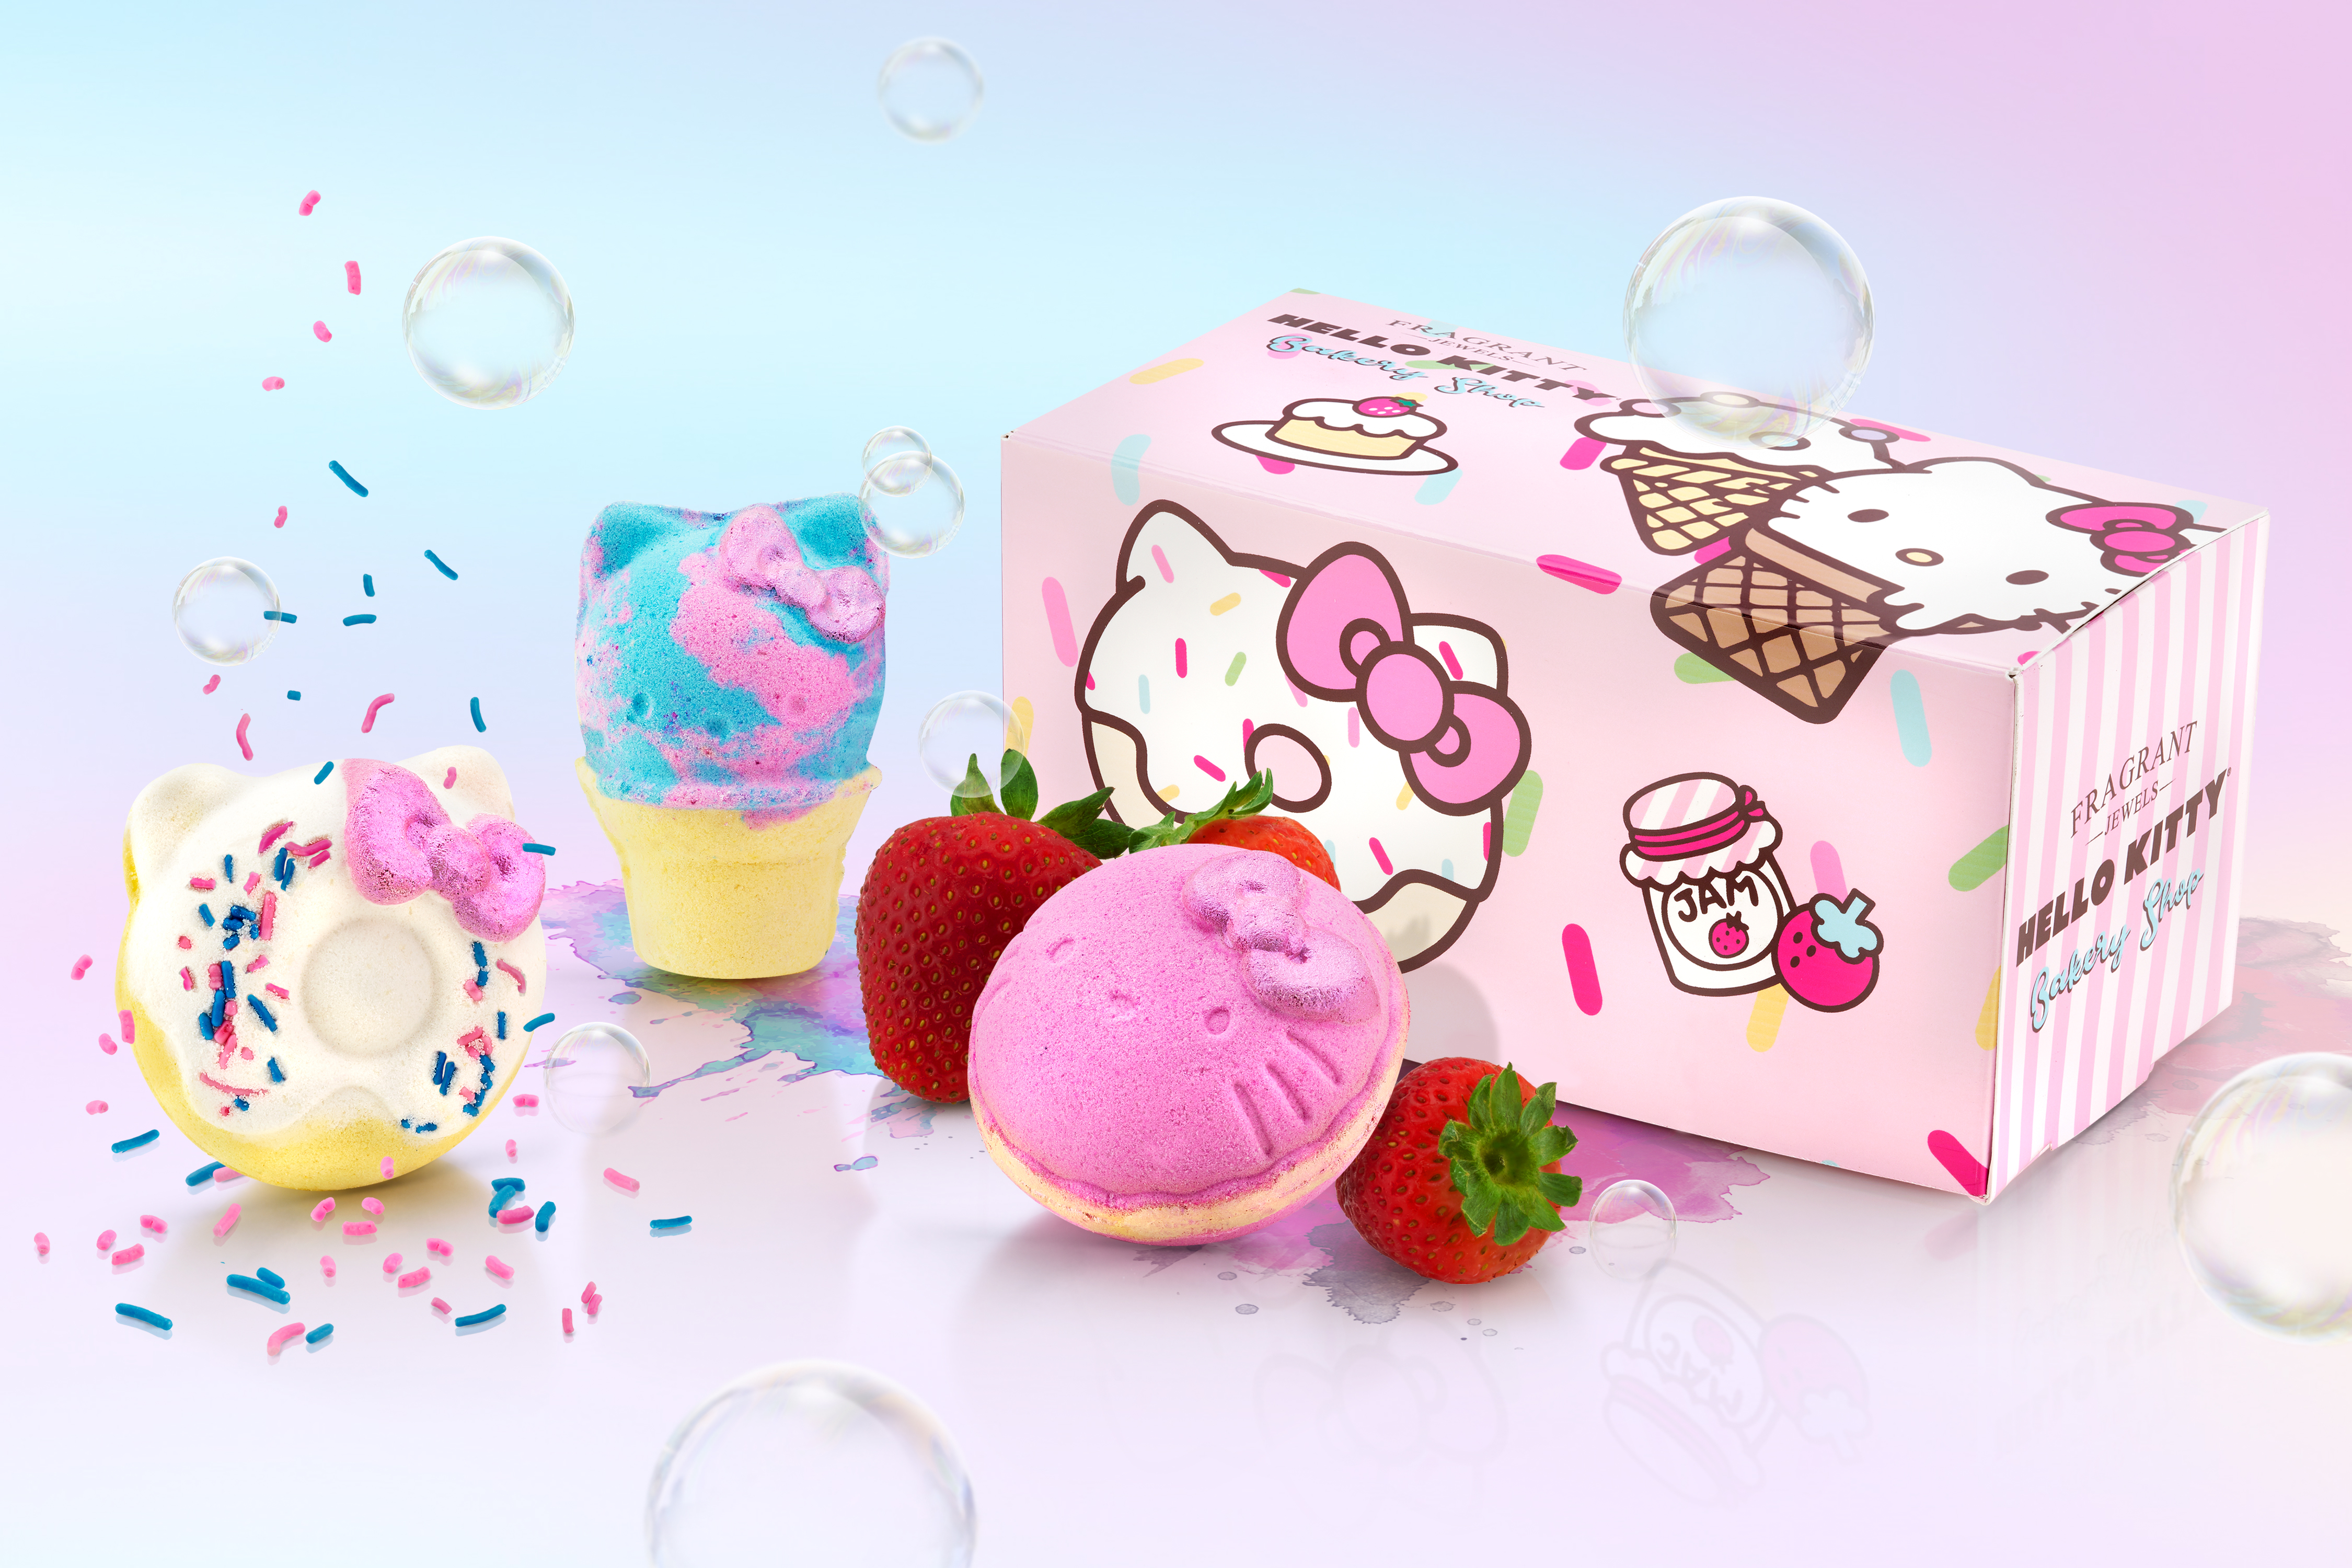 Hello Kitty ad, Bath bombs, Graphic Design